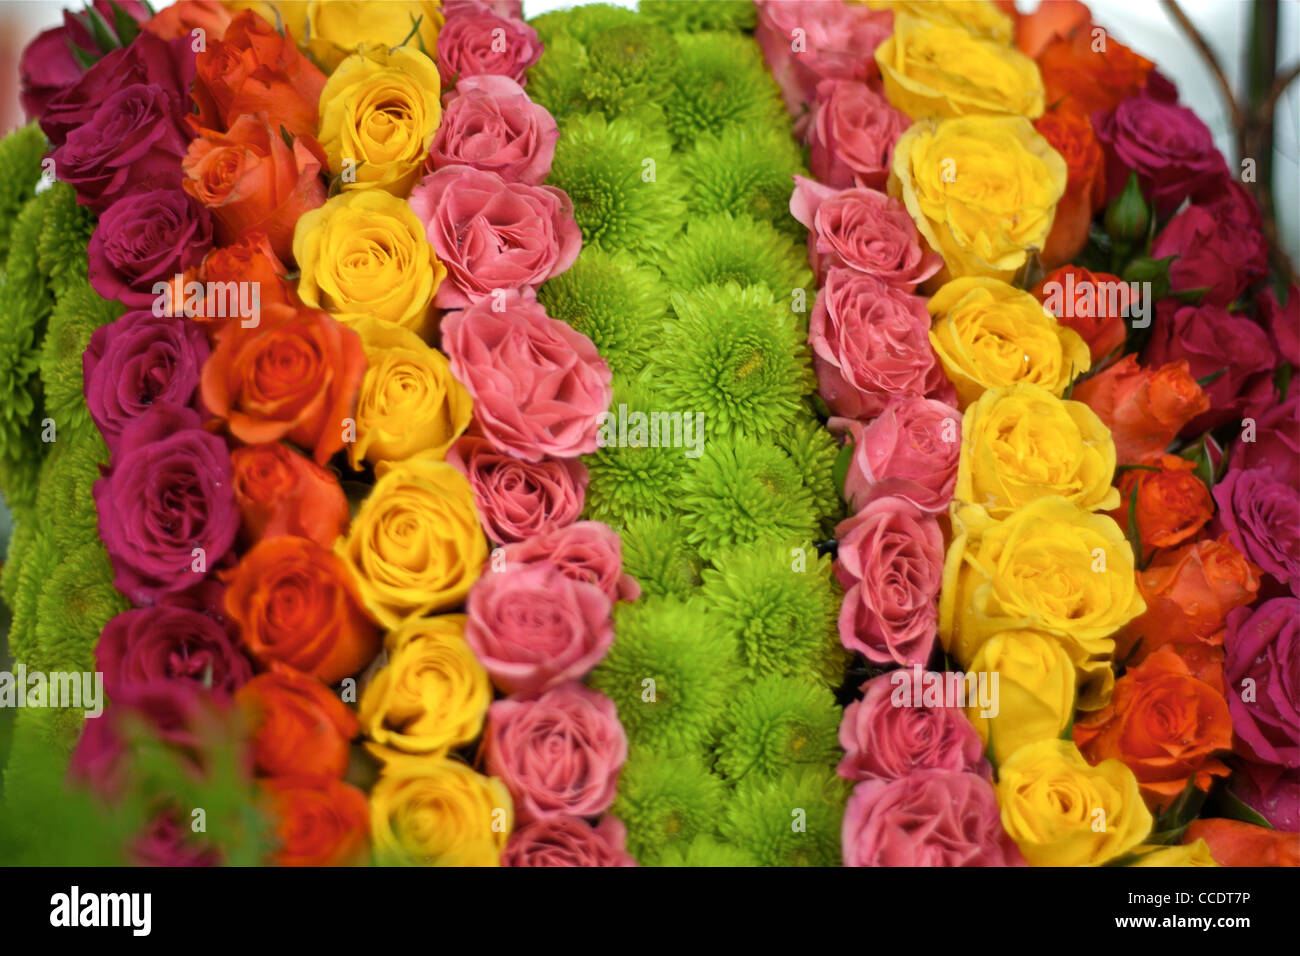 Images of all colours rose flowers